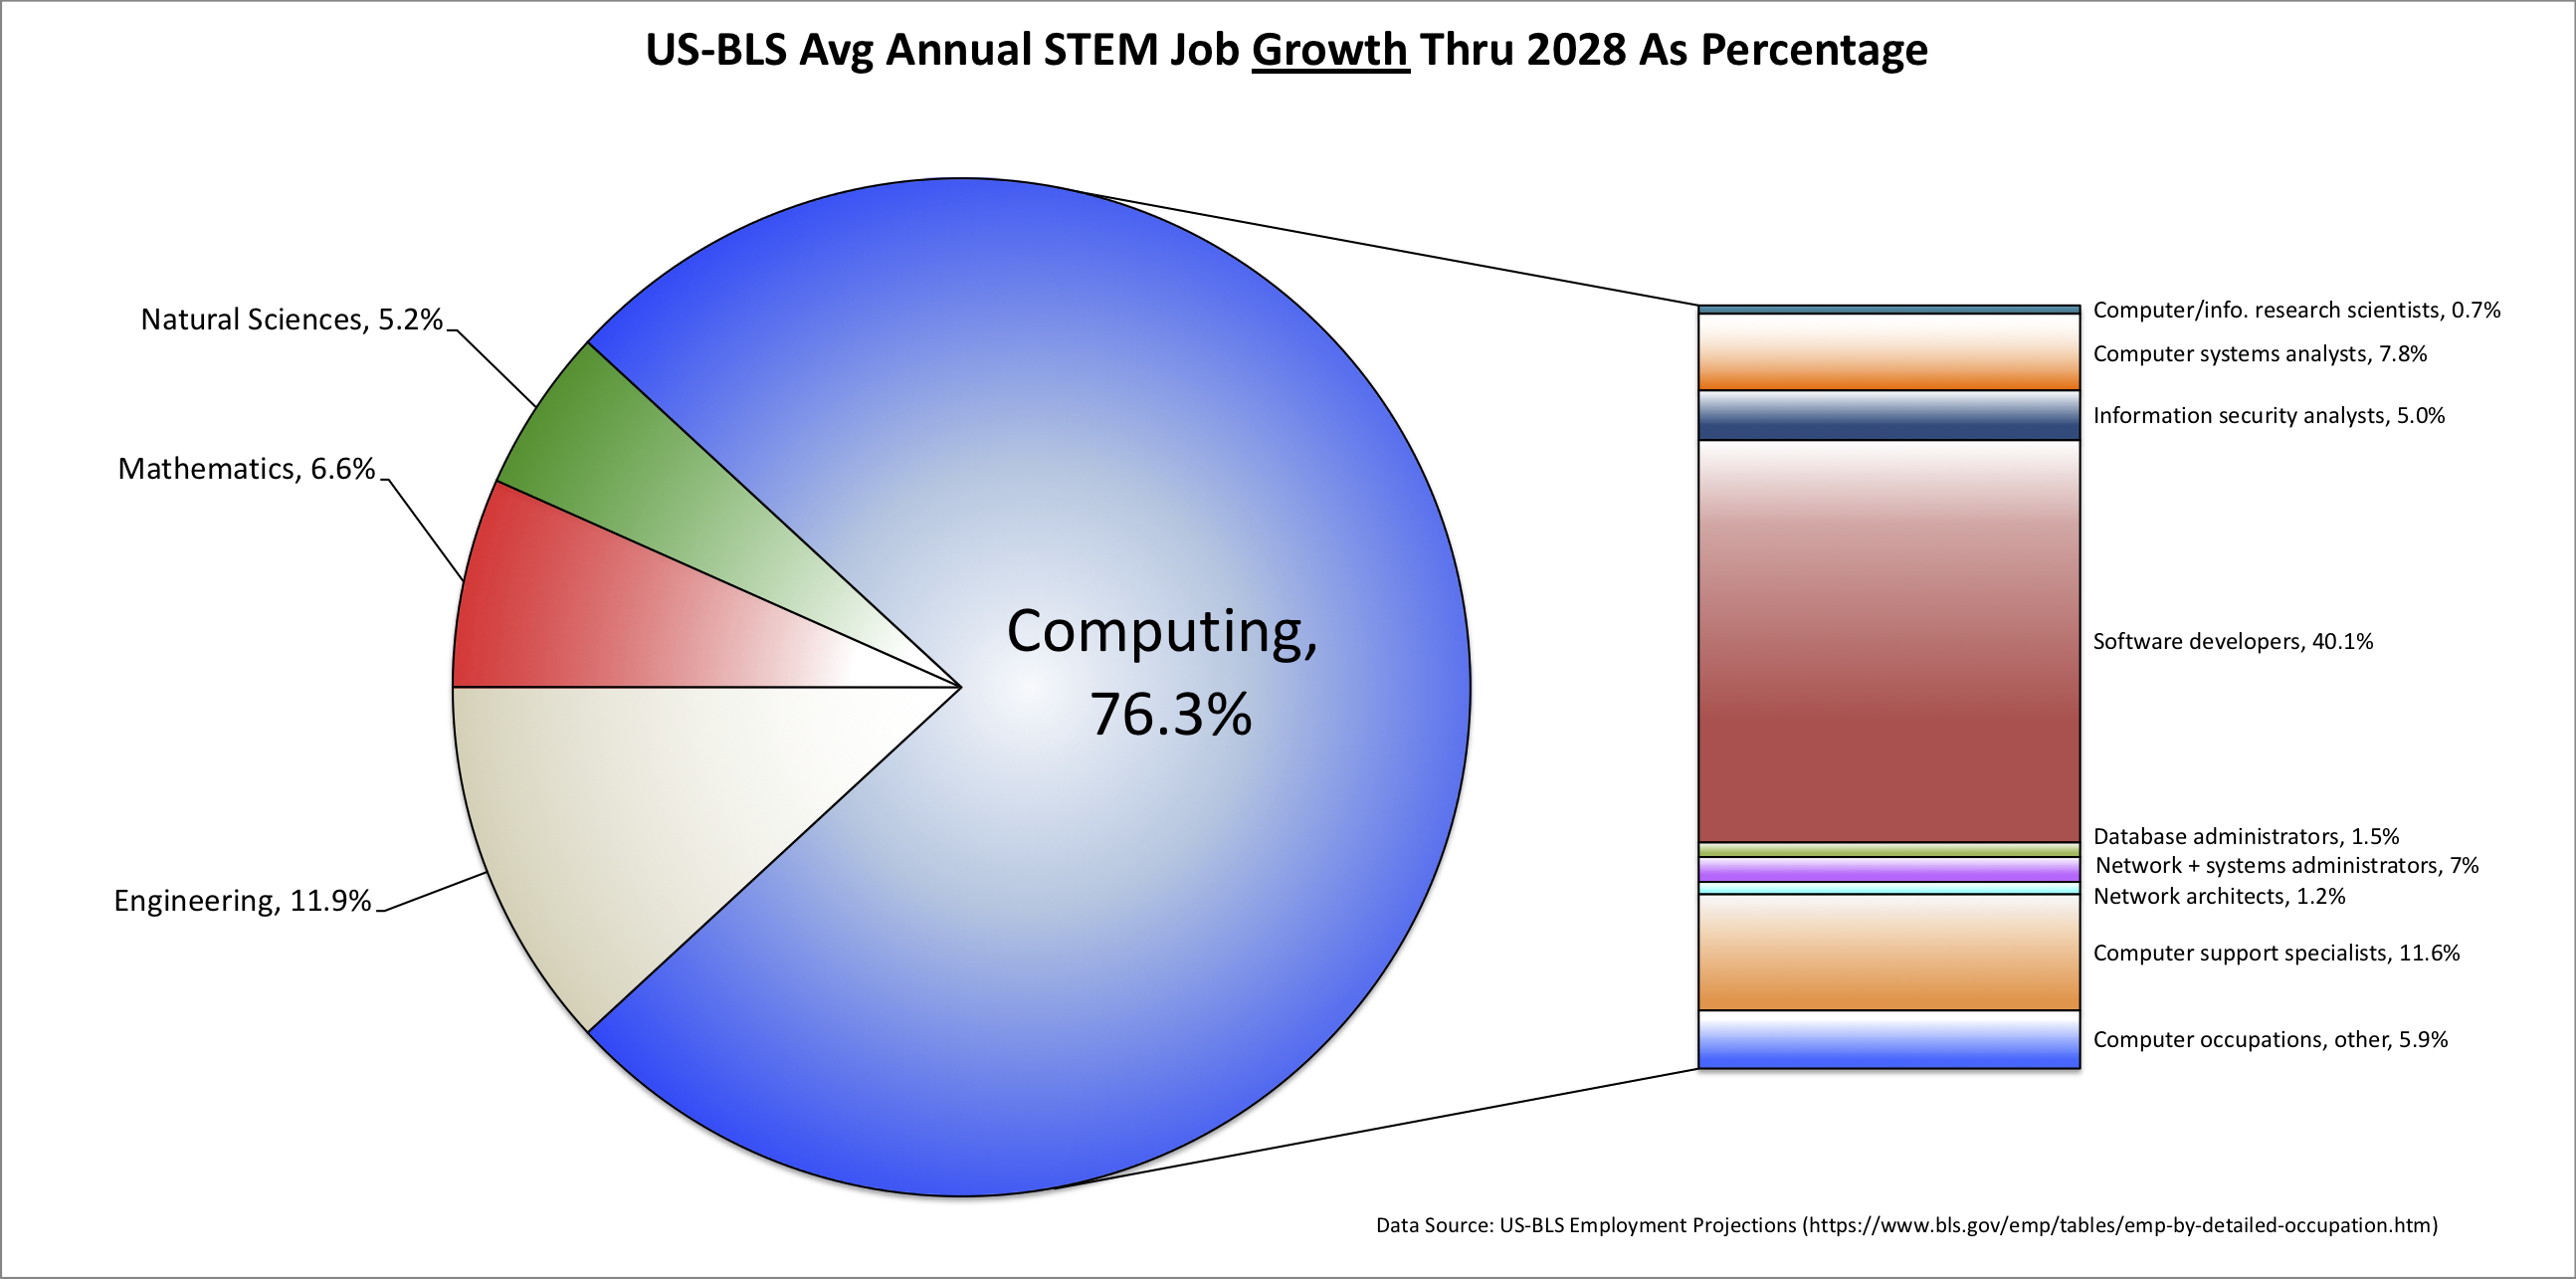 The U.S. Bureau of Labor predicts that between now and 2028,               almost 69% of the new STEM jobs will be computing jobs